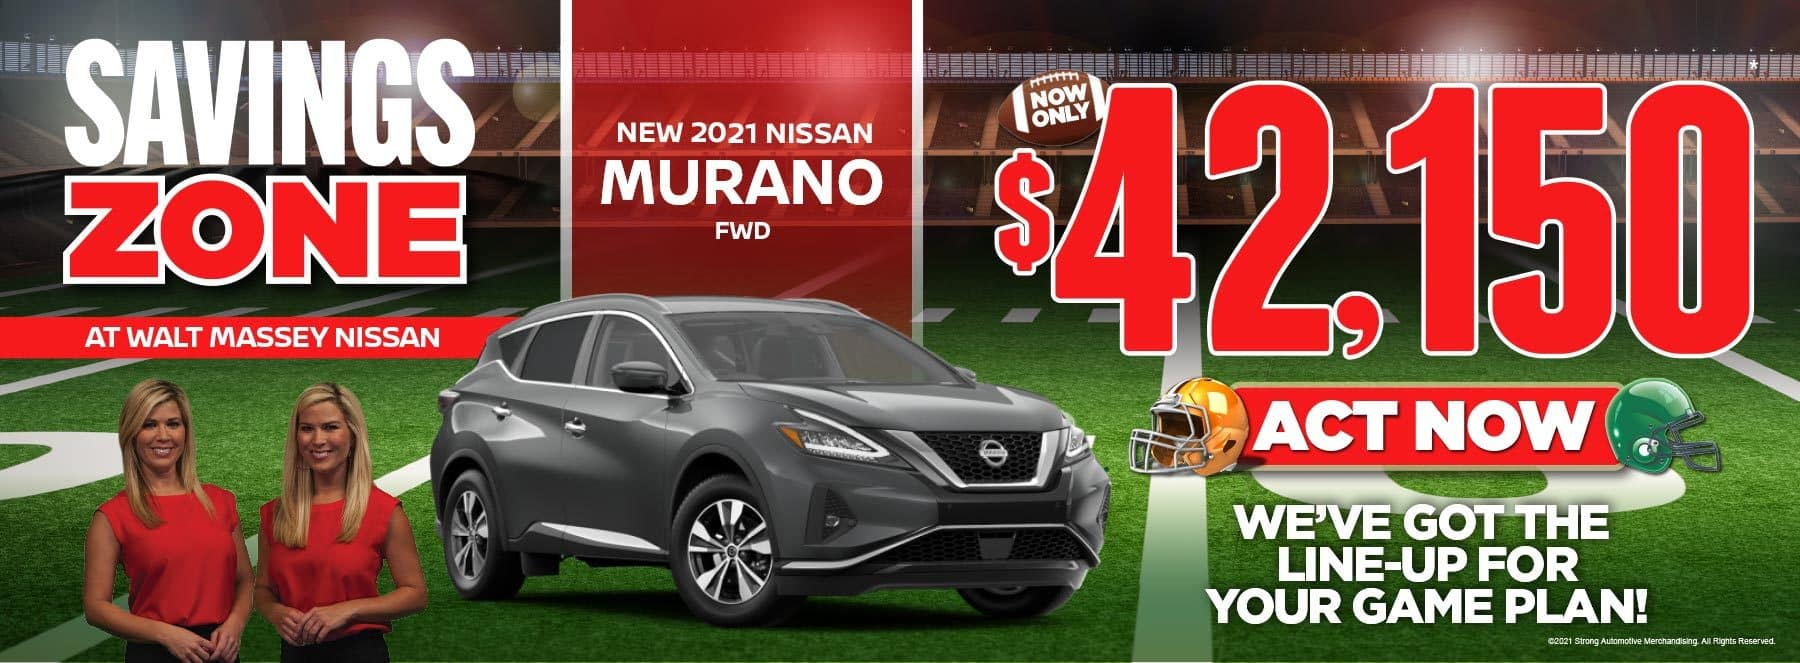 New Nissan Murano FWD Now Only $42,150. Act now!